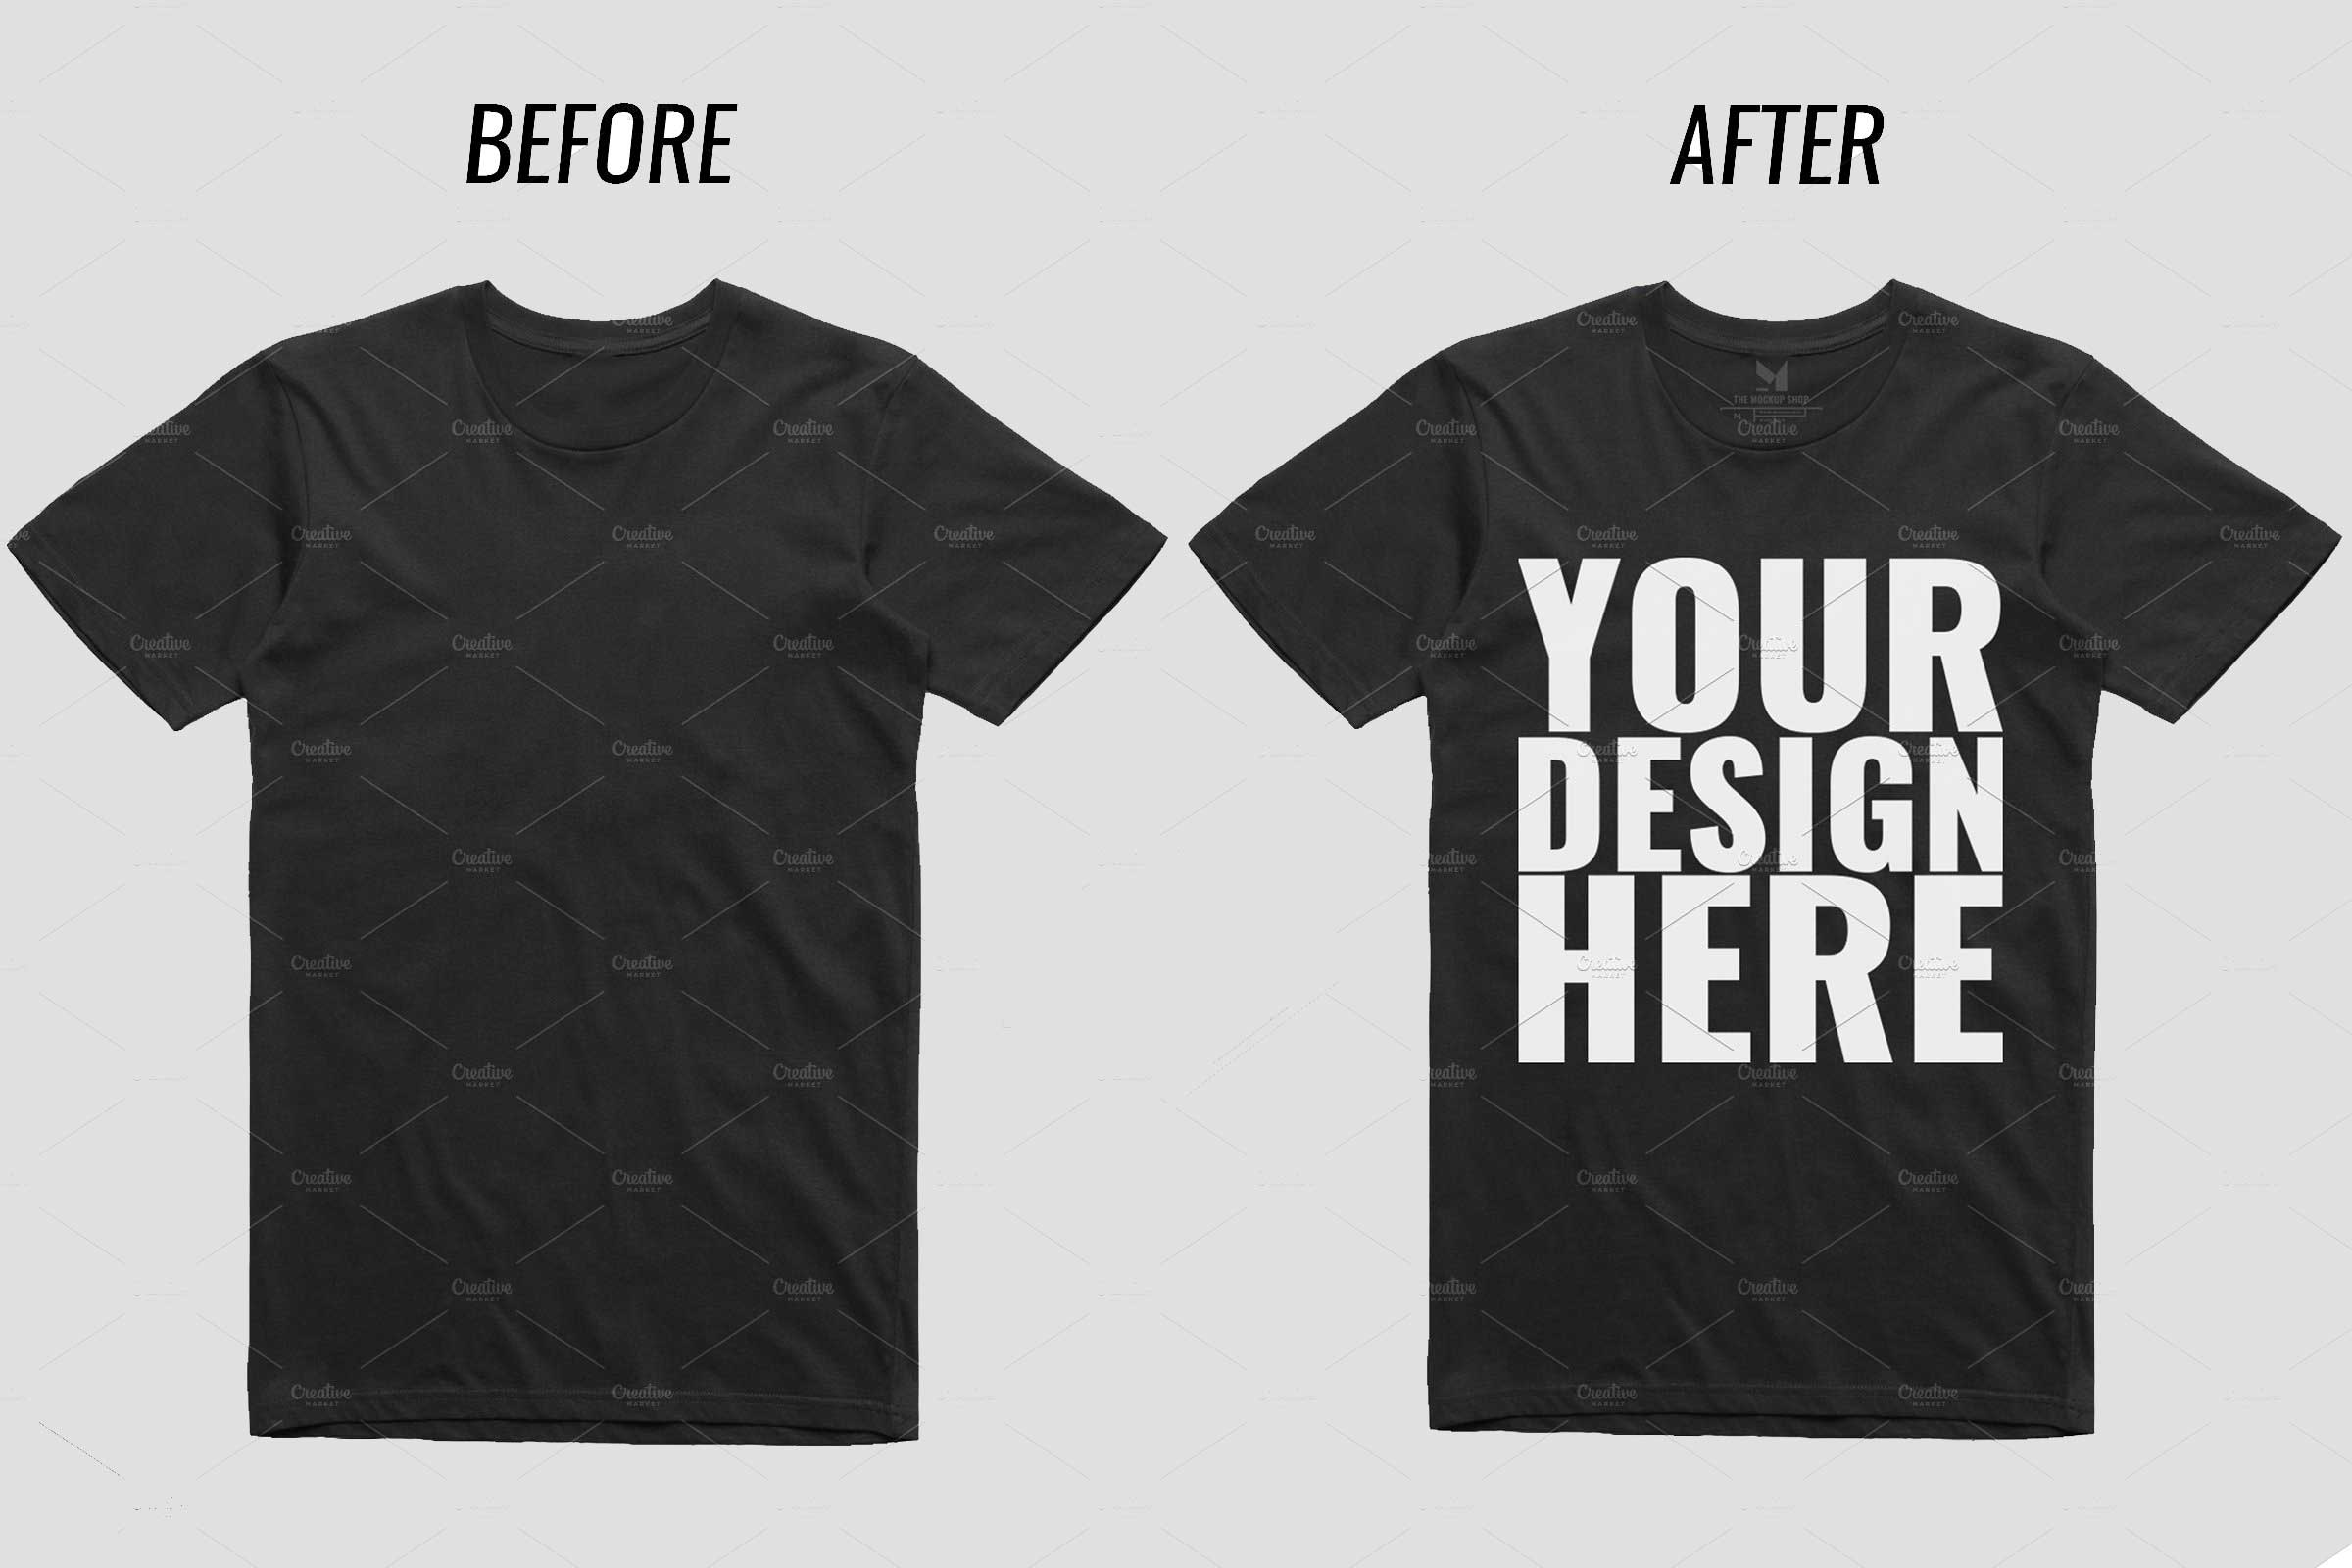 a6ccc602f 30 Awesome Black T-shirt Mockups For Your Apparel Business - Colorlib